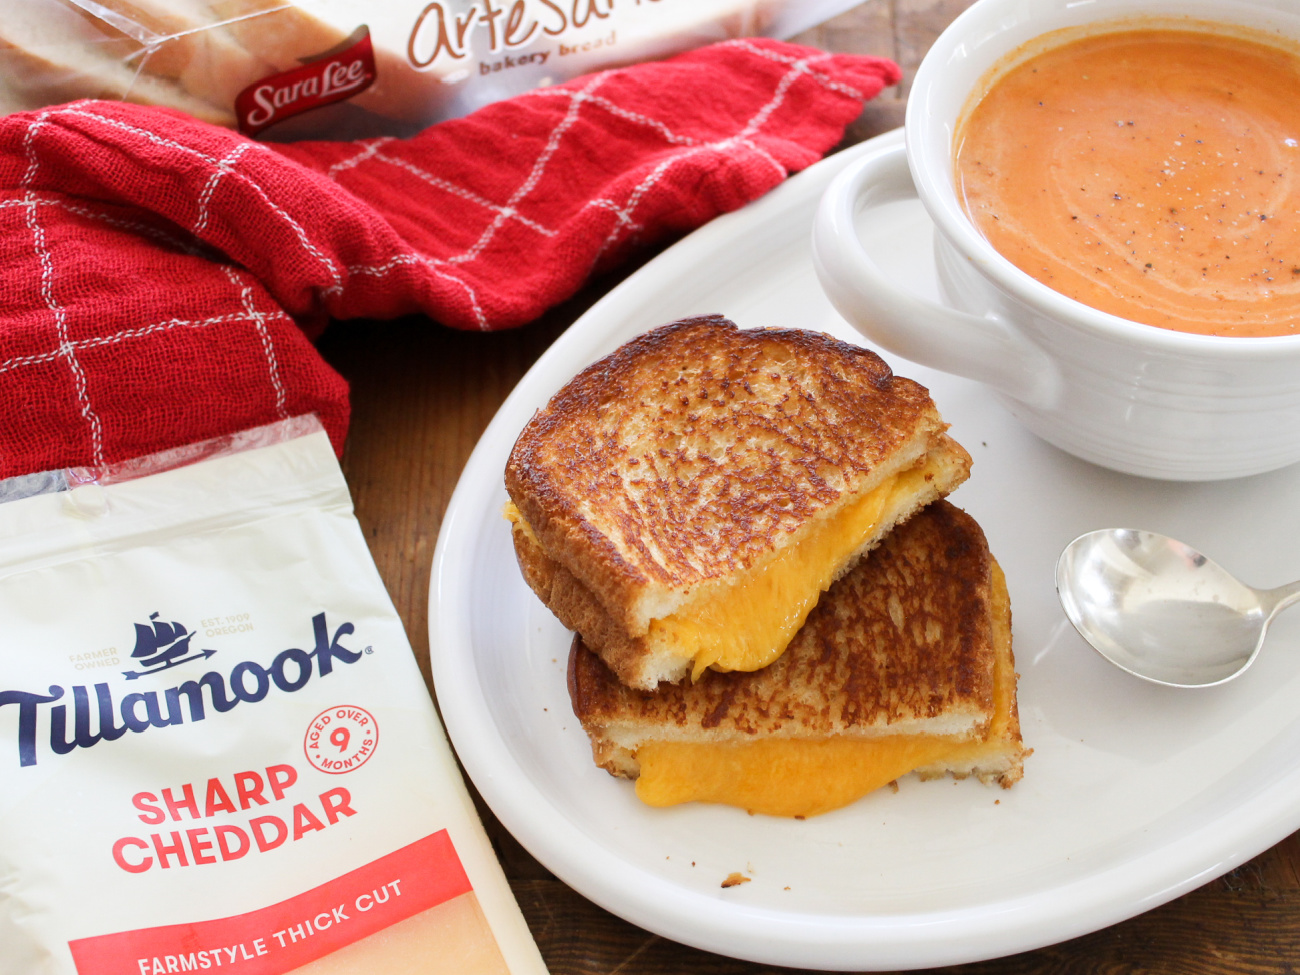 Don't Miss Your Chance To Save On Delicious Tillamook Cheese & Upgrade Your Grilled Cheese on I Heart Publix 1